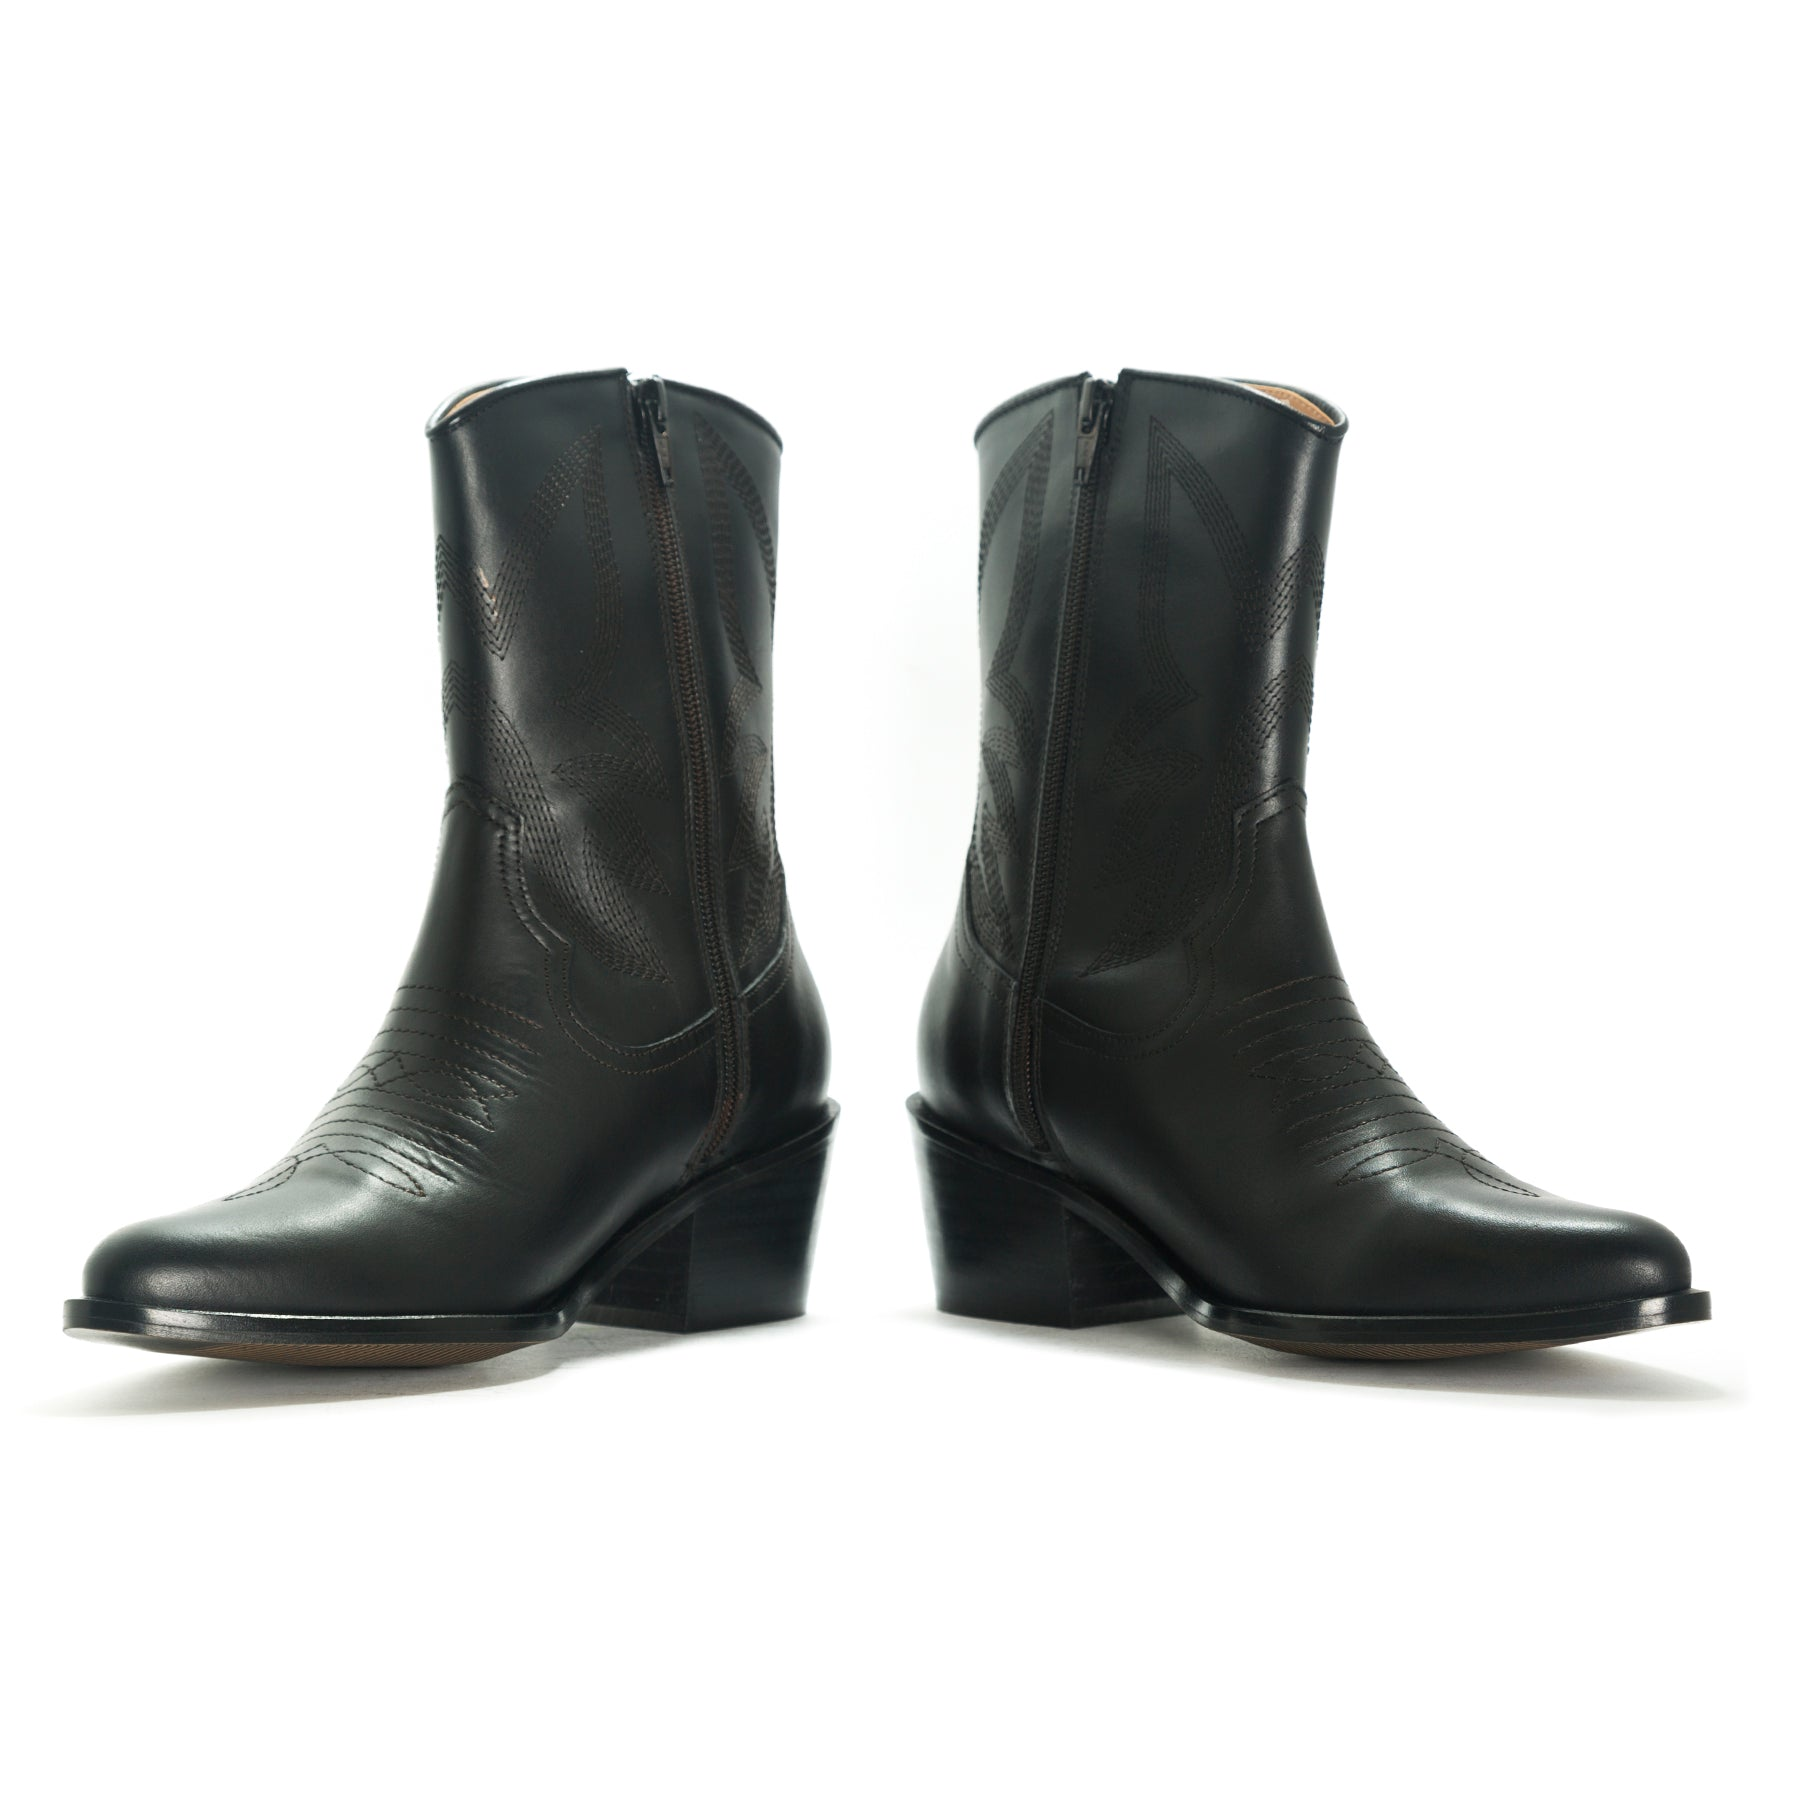 Our basics in your closet. Tary black cowboy booties